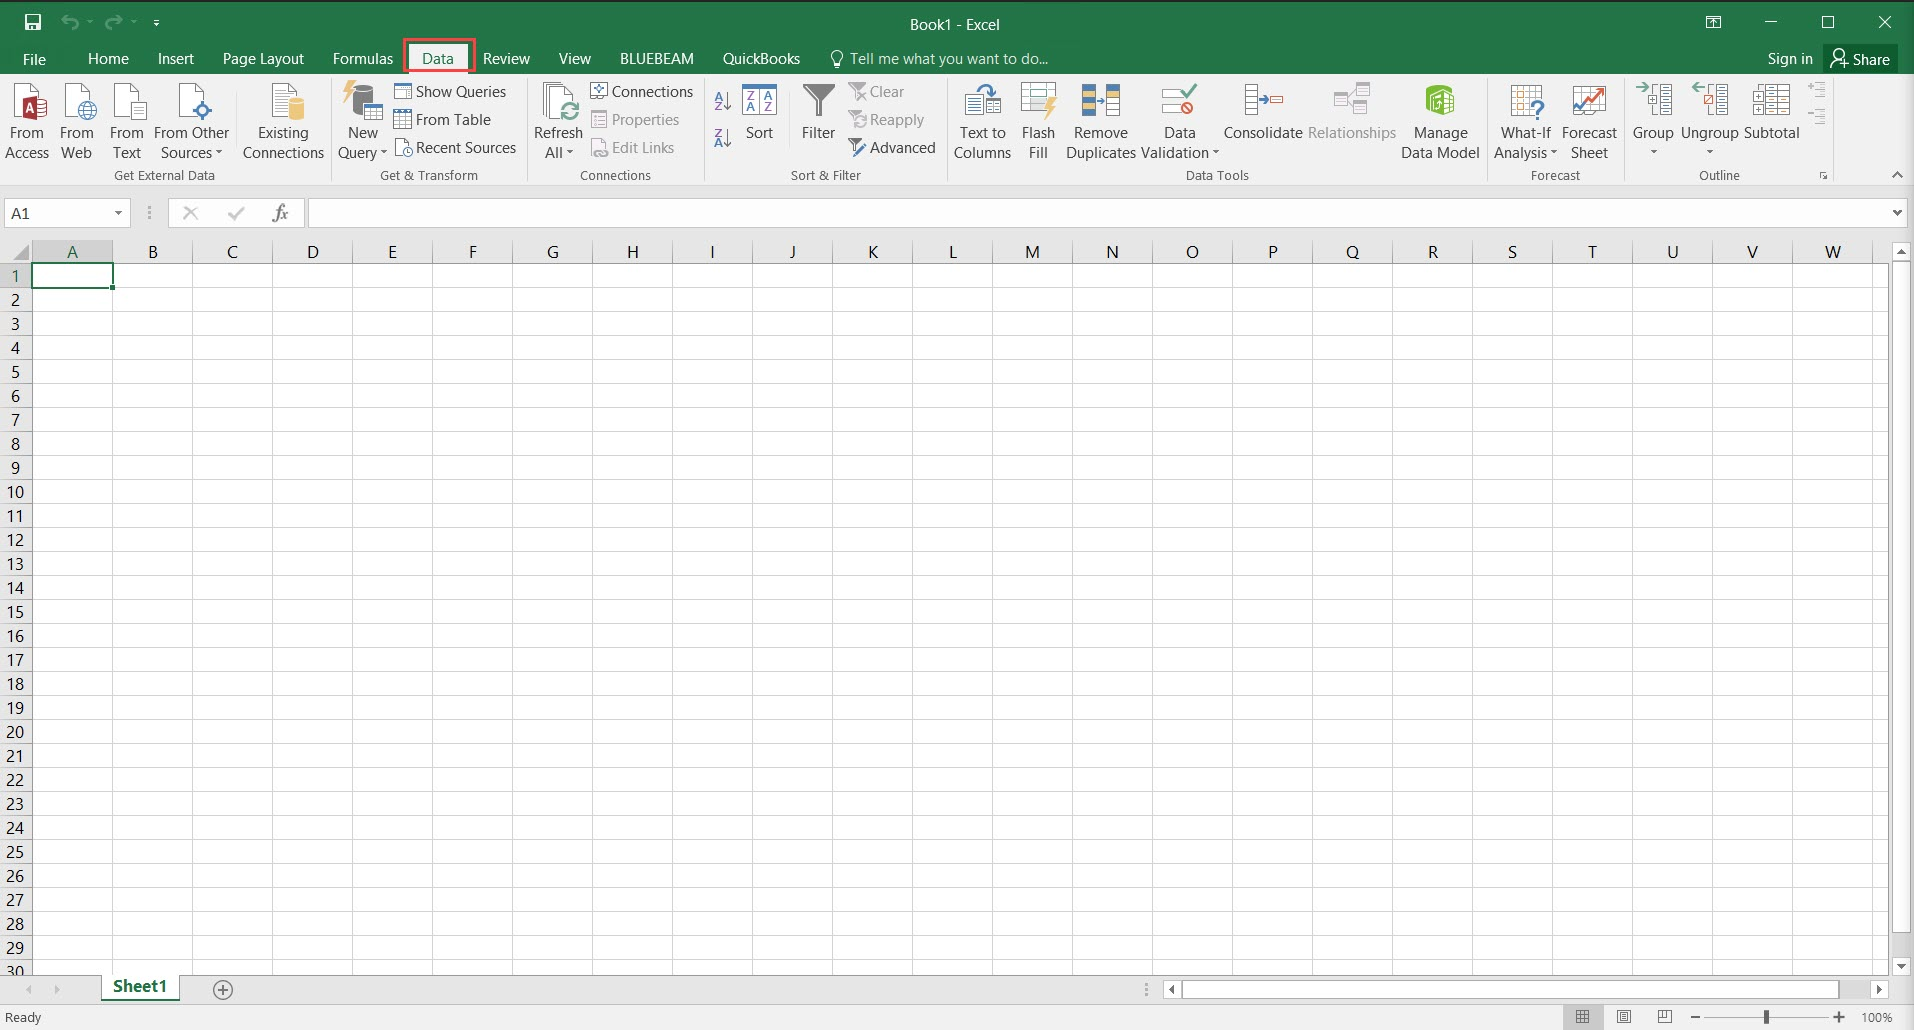 Excel Workbook; shows the location of the Data tab.